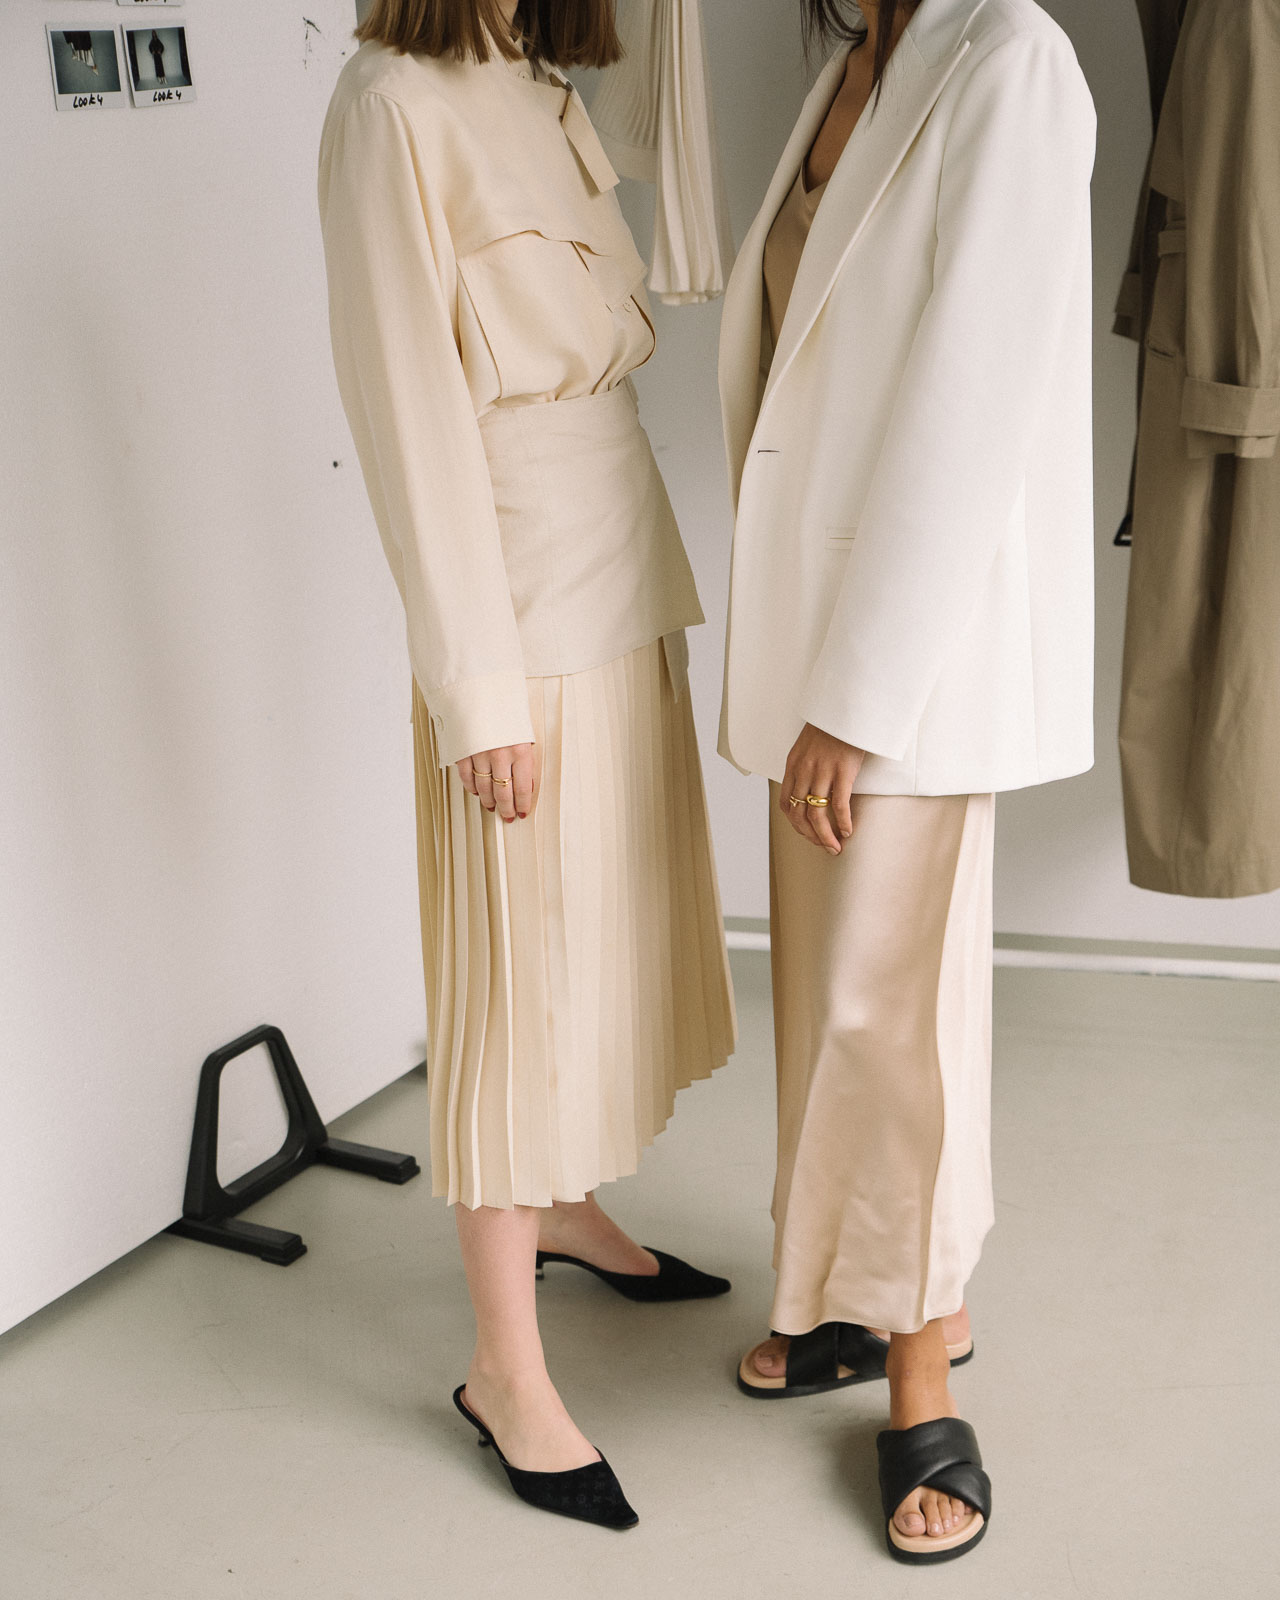 storm wears Stone Silk Satin Dress from Joseph SS19 collection and Swantje Soemmer wears Billie Boucle Fuji Silk Skirt shot by Marius Knieling